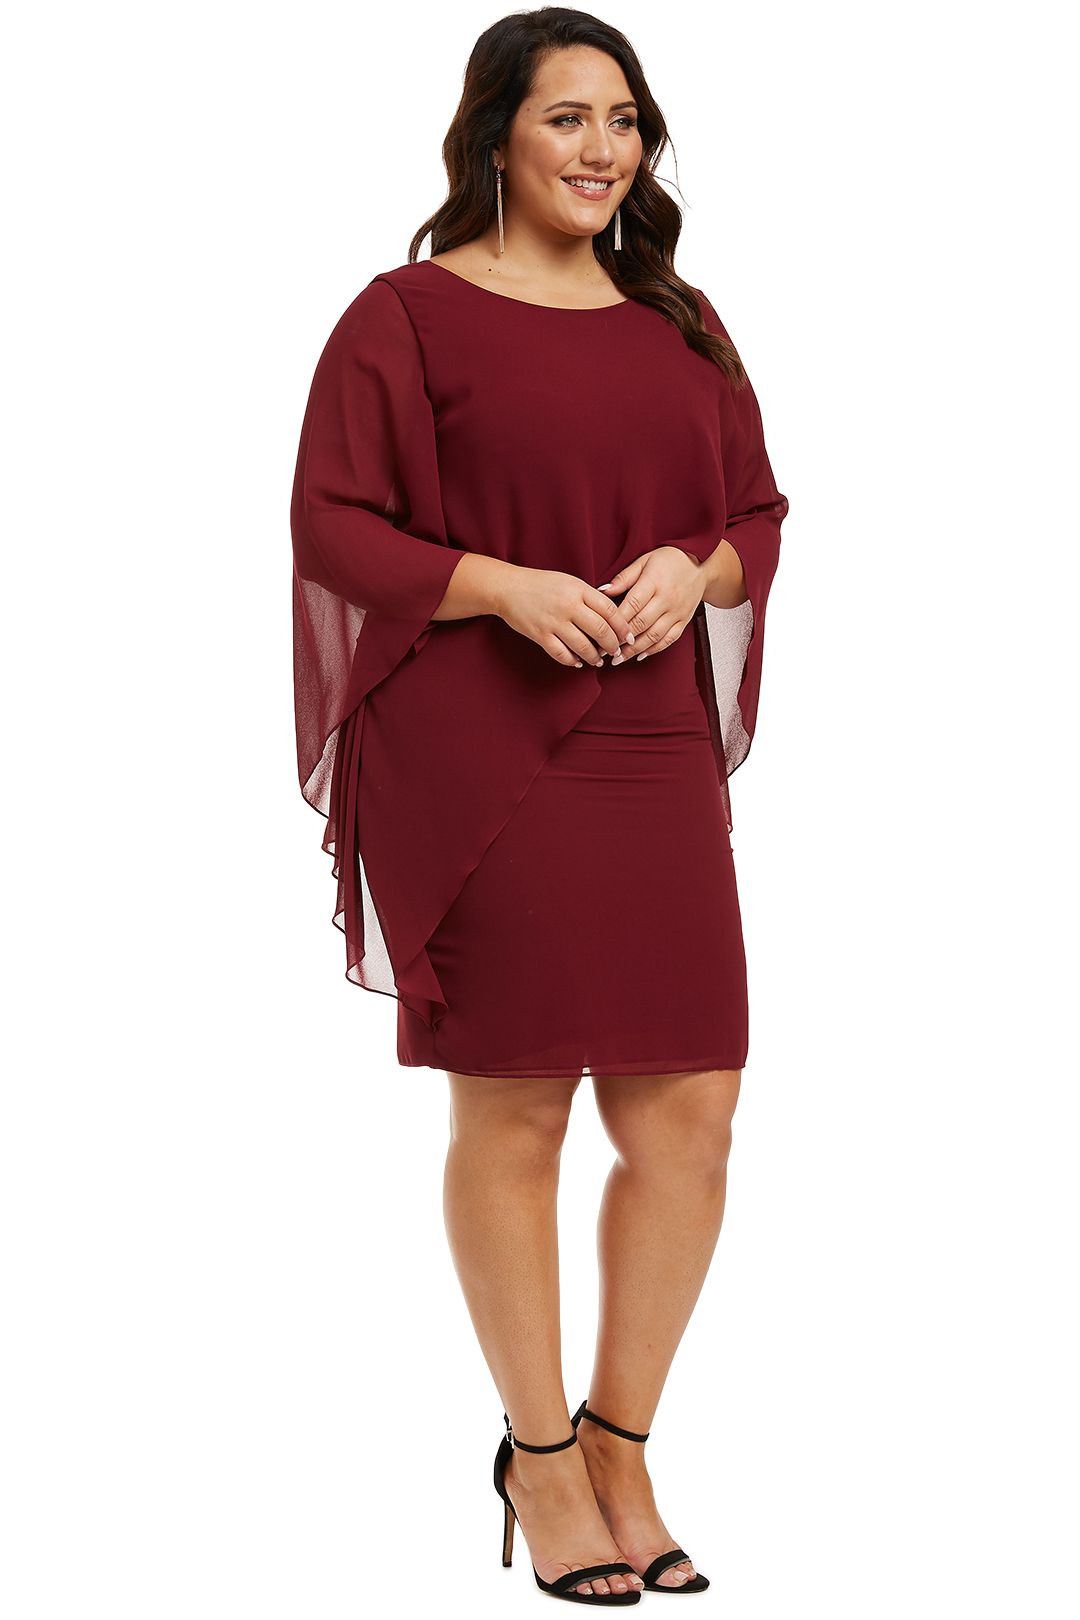 Montique-Ciana Cocktail Dress Wine-Wine-Side